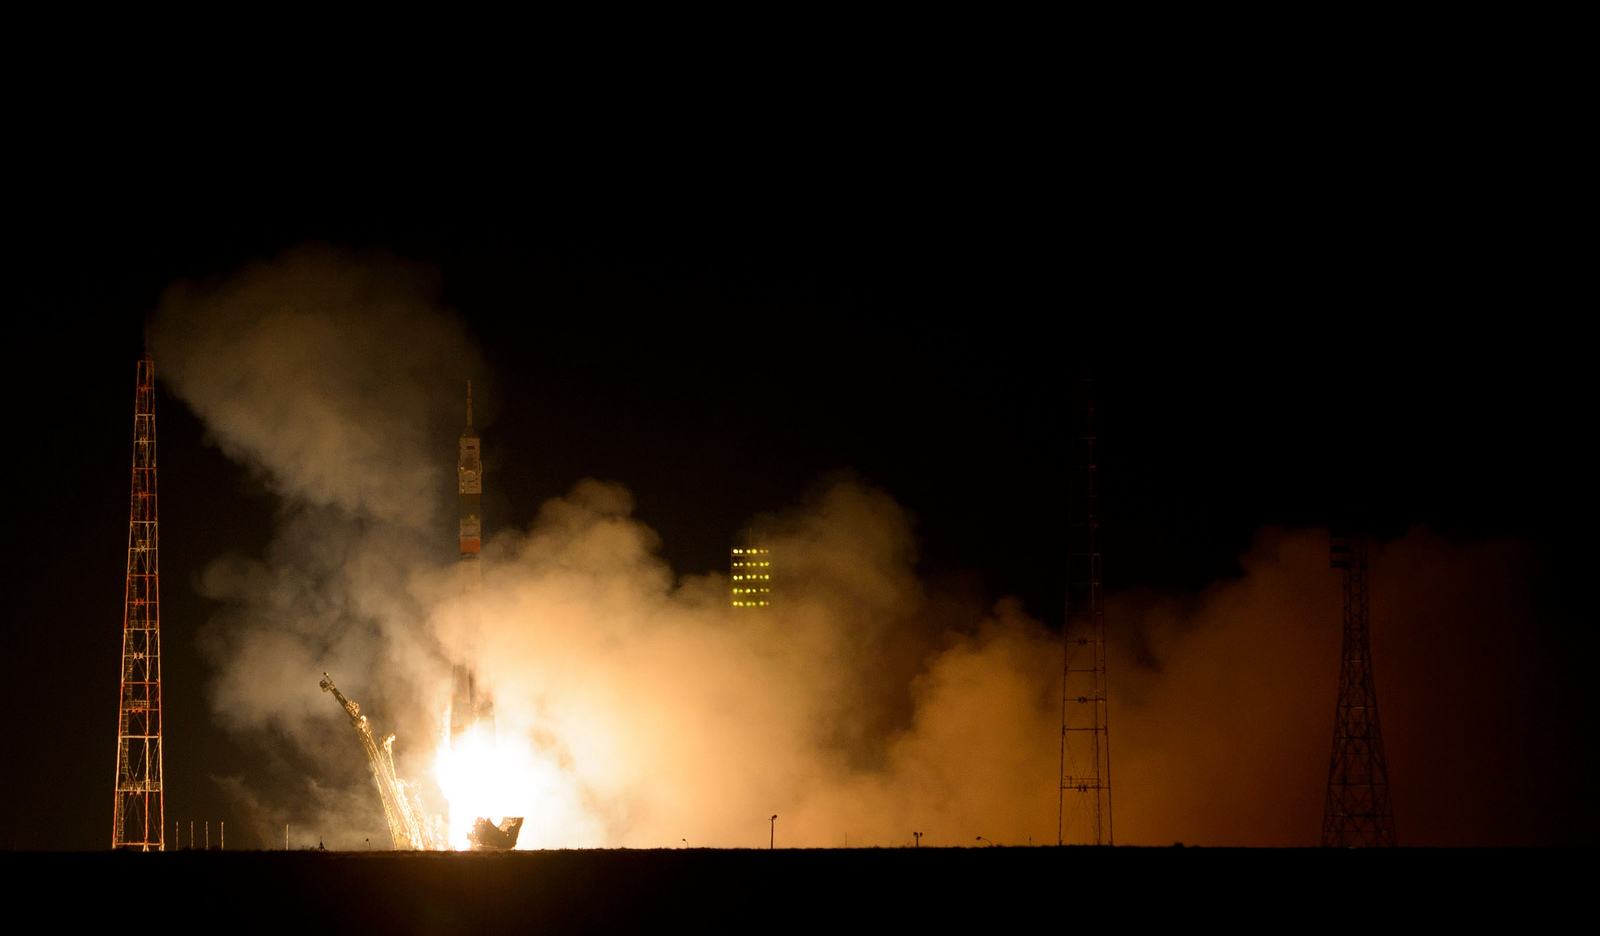 Space expedition 39: The launch of Russian rocket Soyuz TMA12M - 13